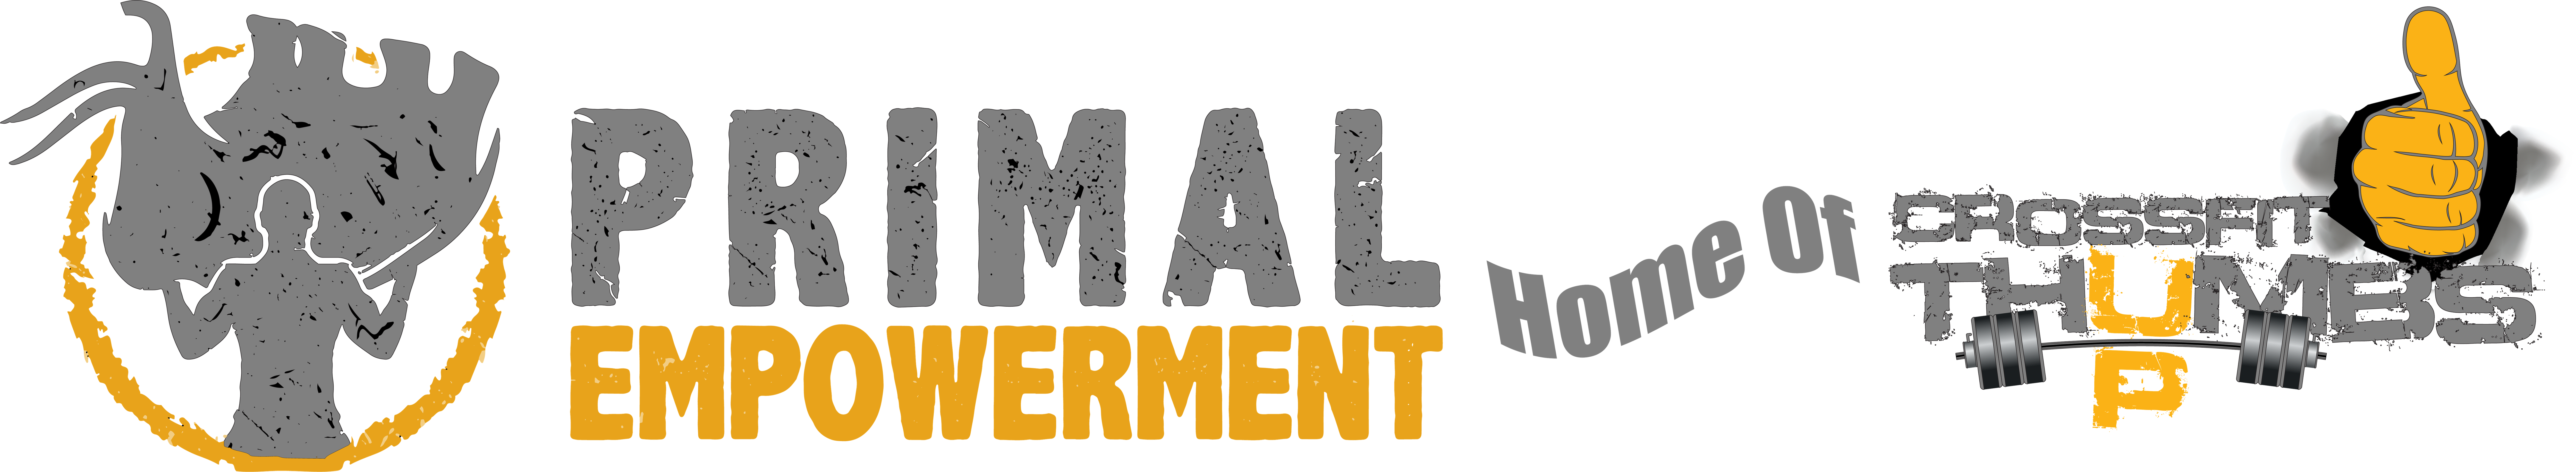 Primal Empowerment Home of CrossFit Thumbs Up